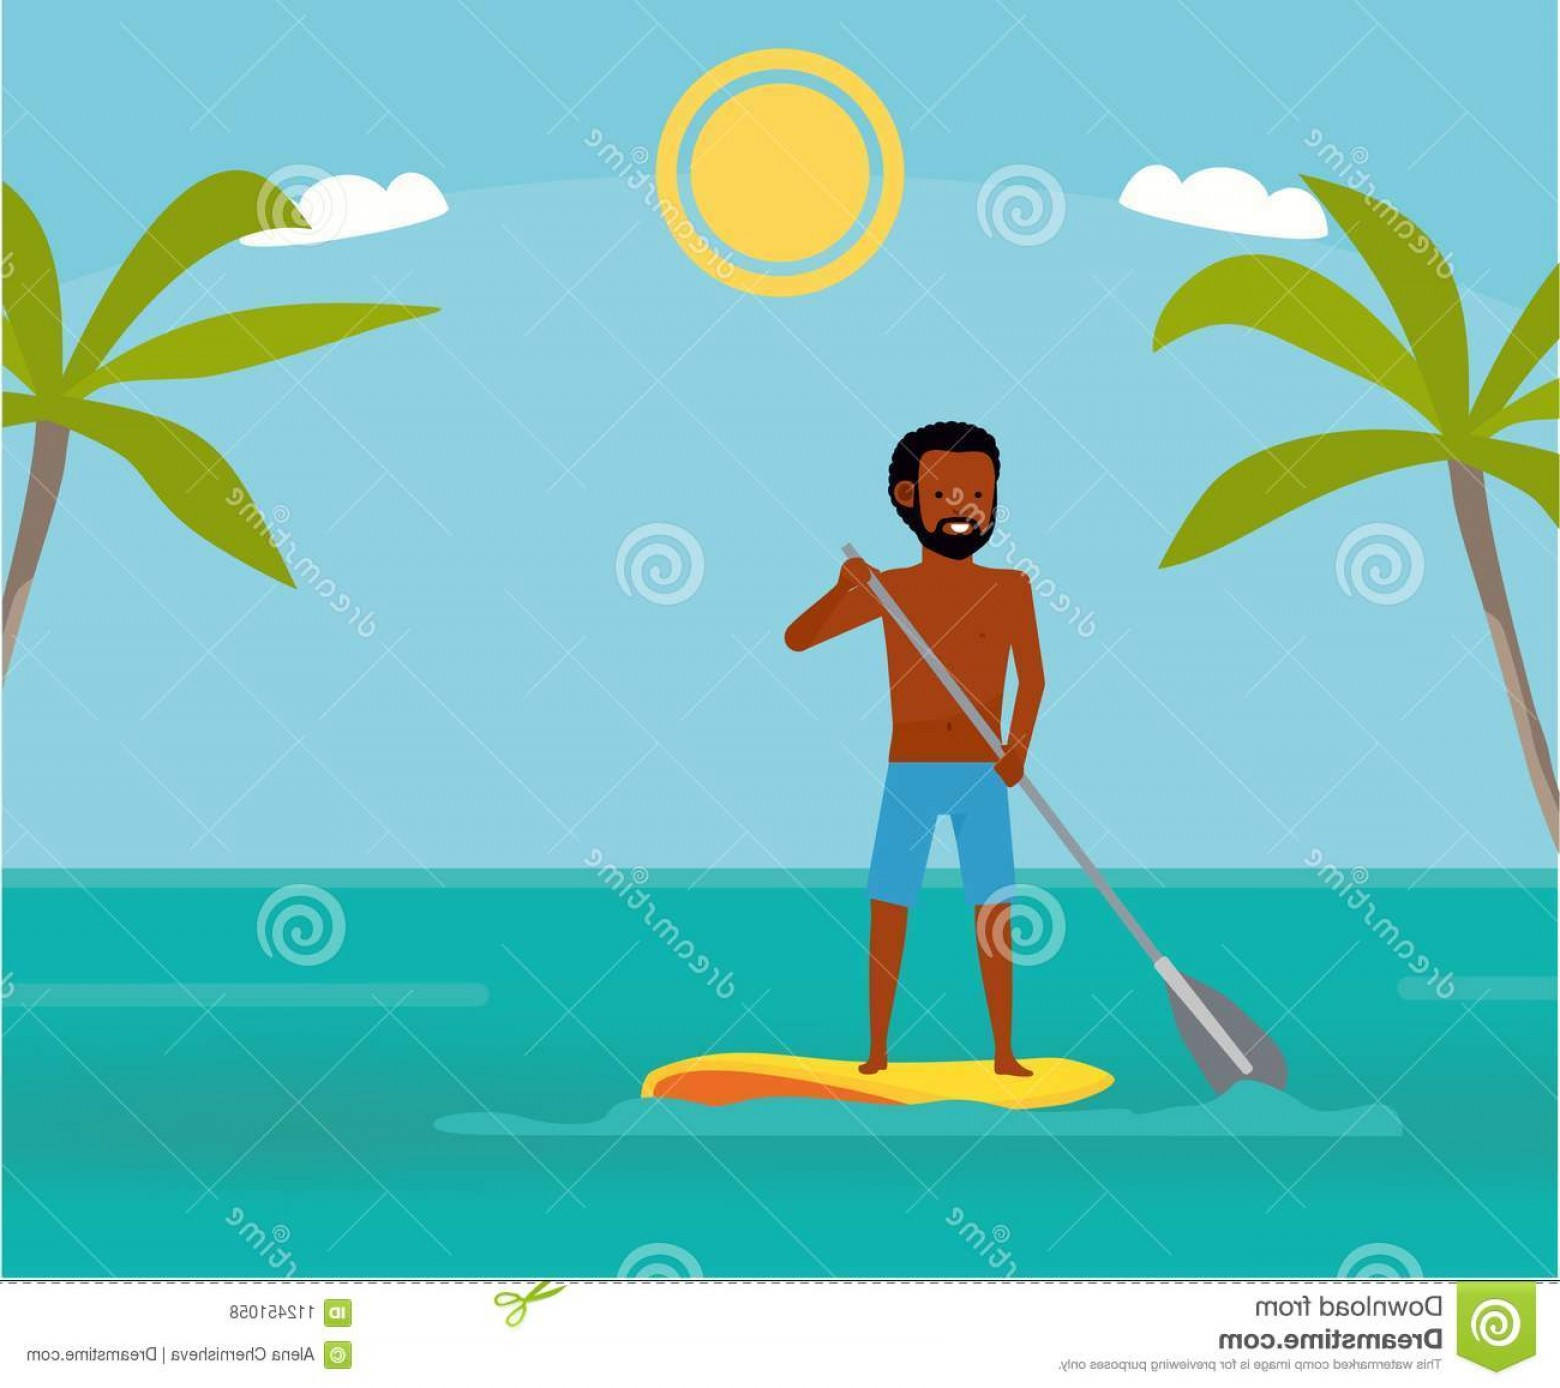 Stand Up Paddle Boarder Vector: Stand Up Paddle Boarder Exercising Ocean Summer Vacation Cartoon Vector Illustration Sea Tour African American Family Flat Image